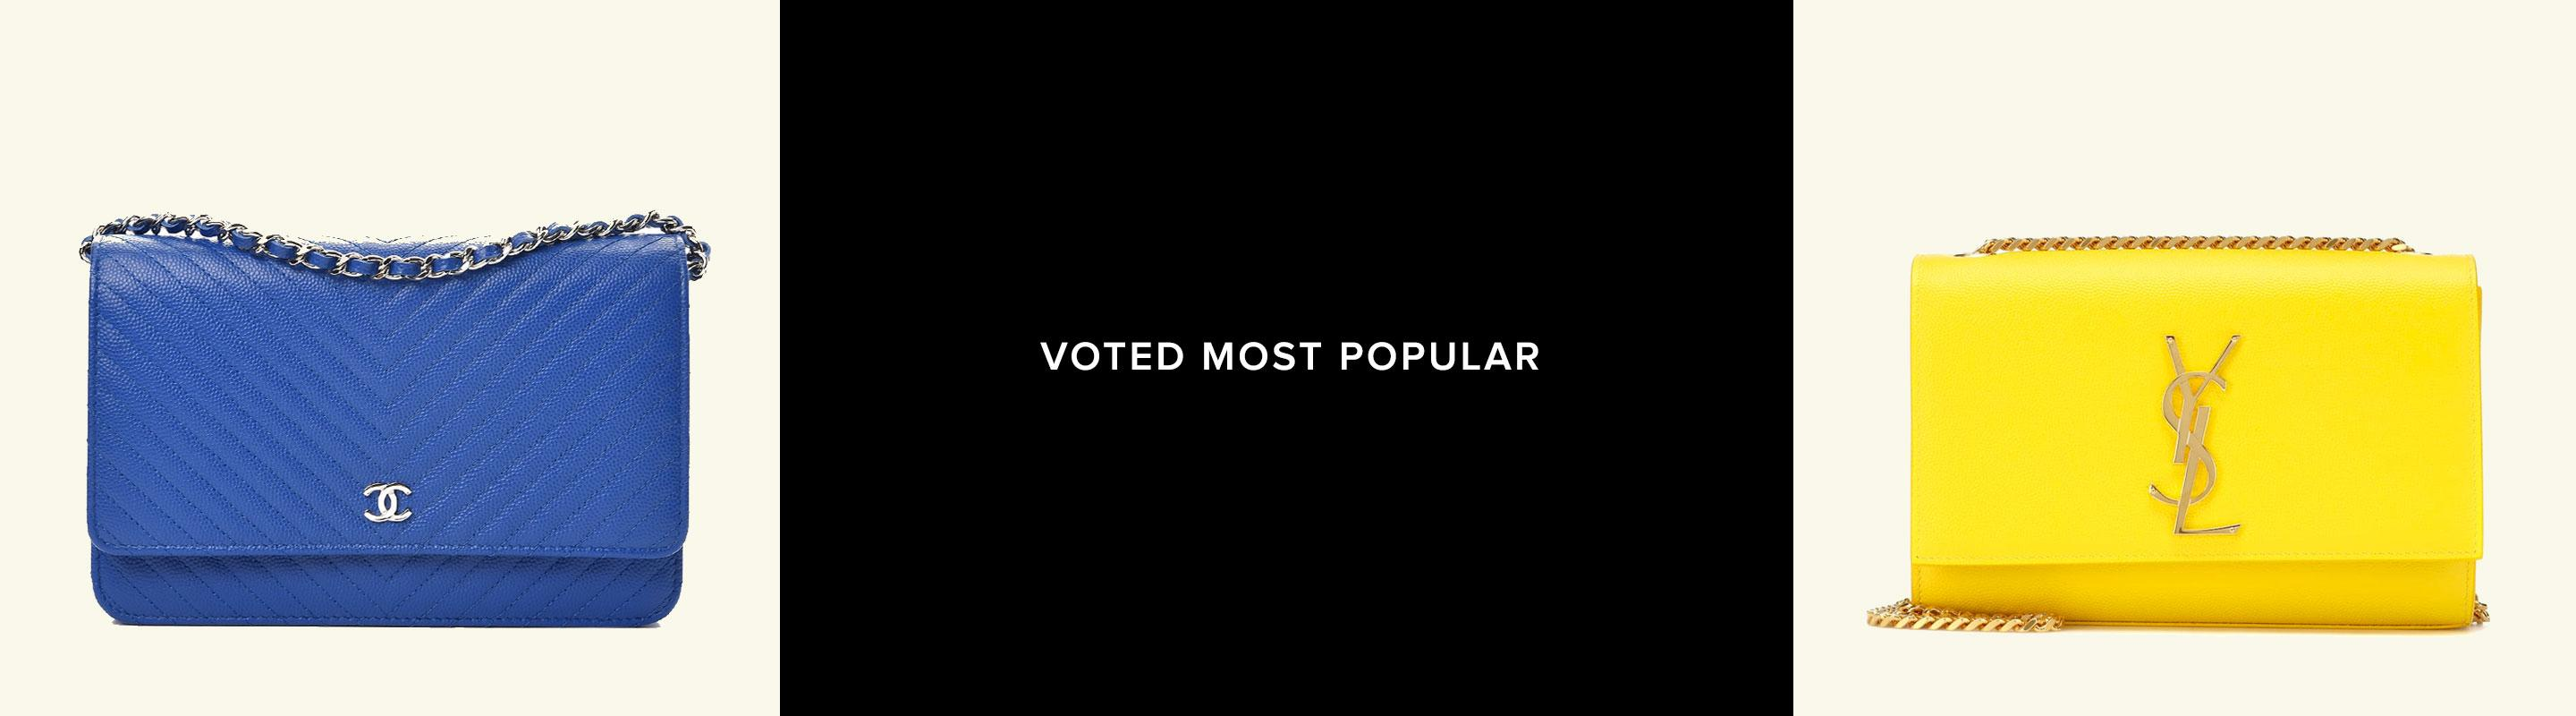 Voted Most Popular